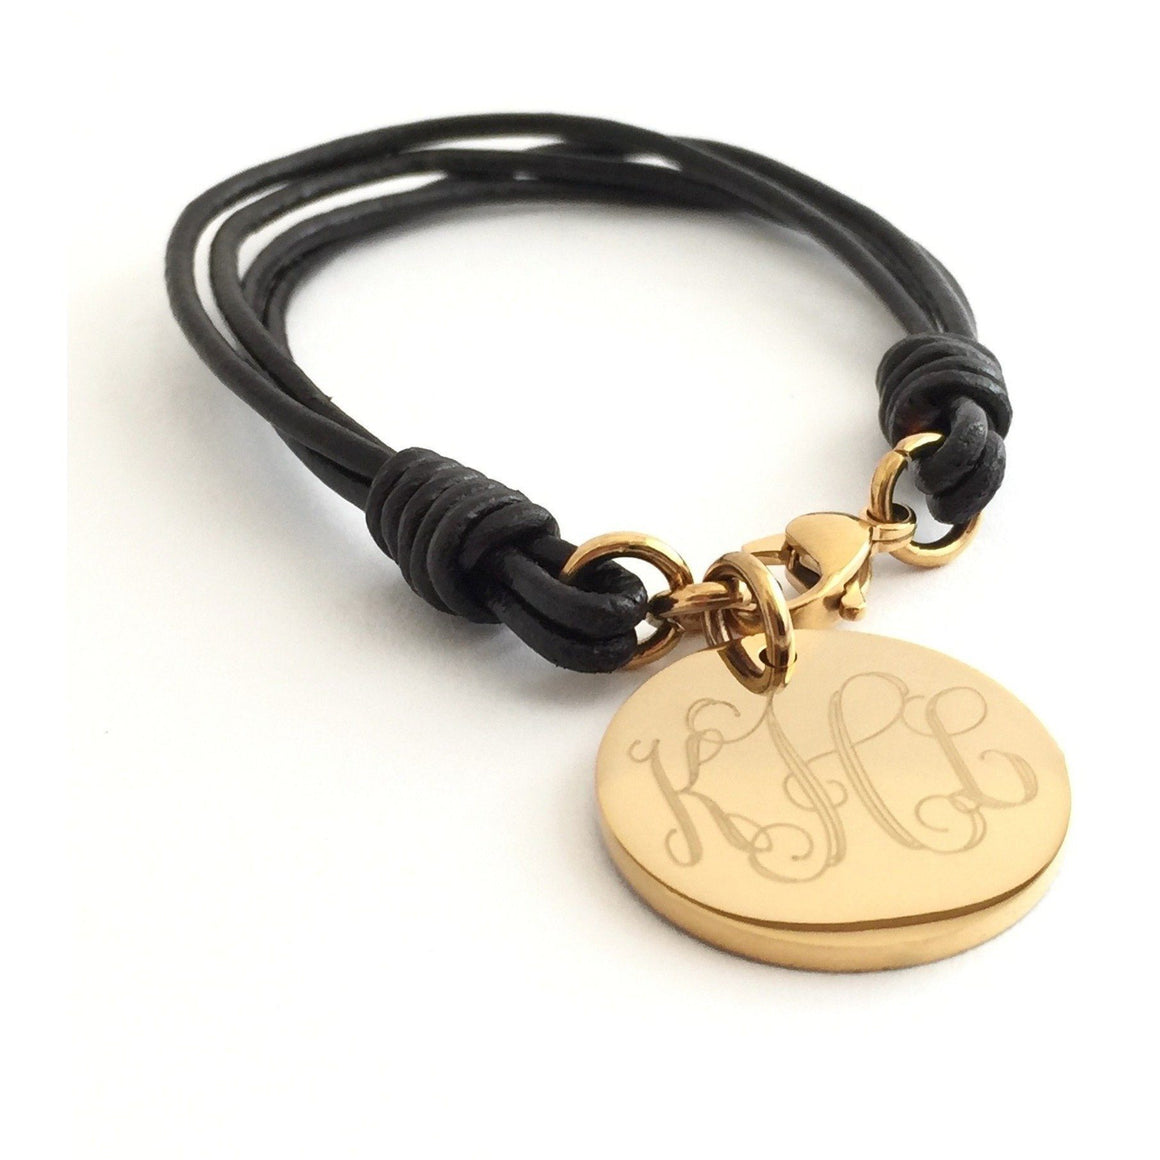 Leather Monogram Bracelet With Gold Charm